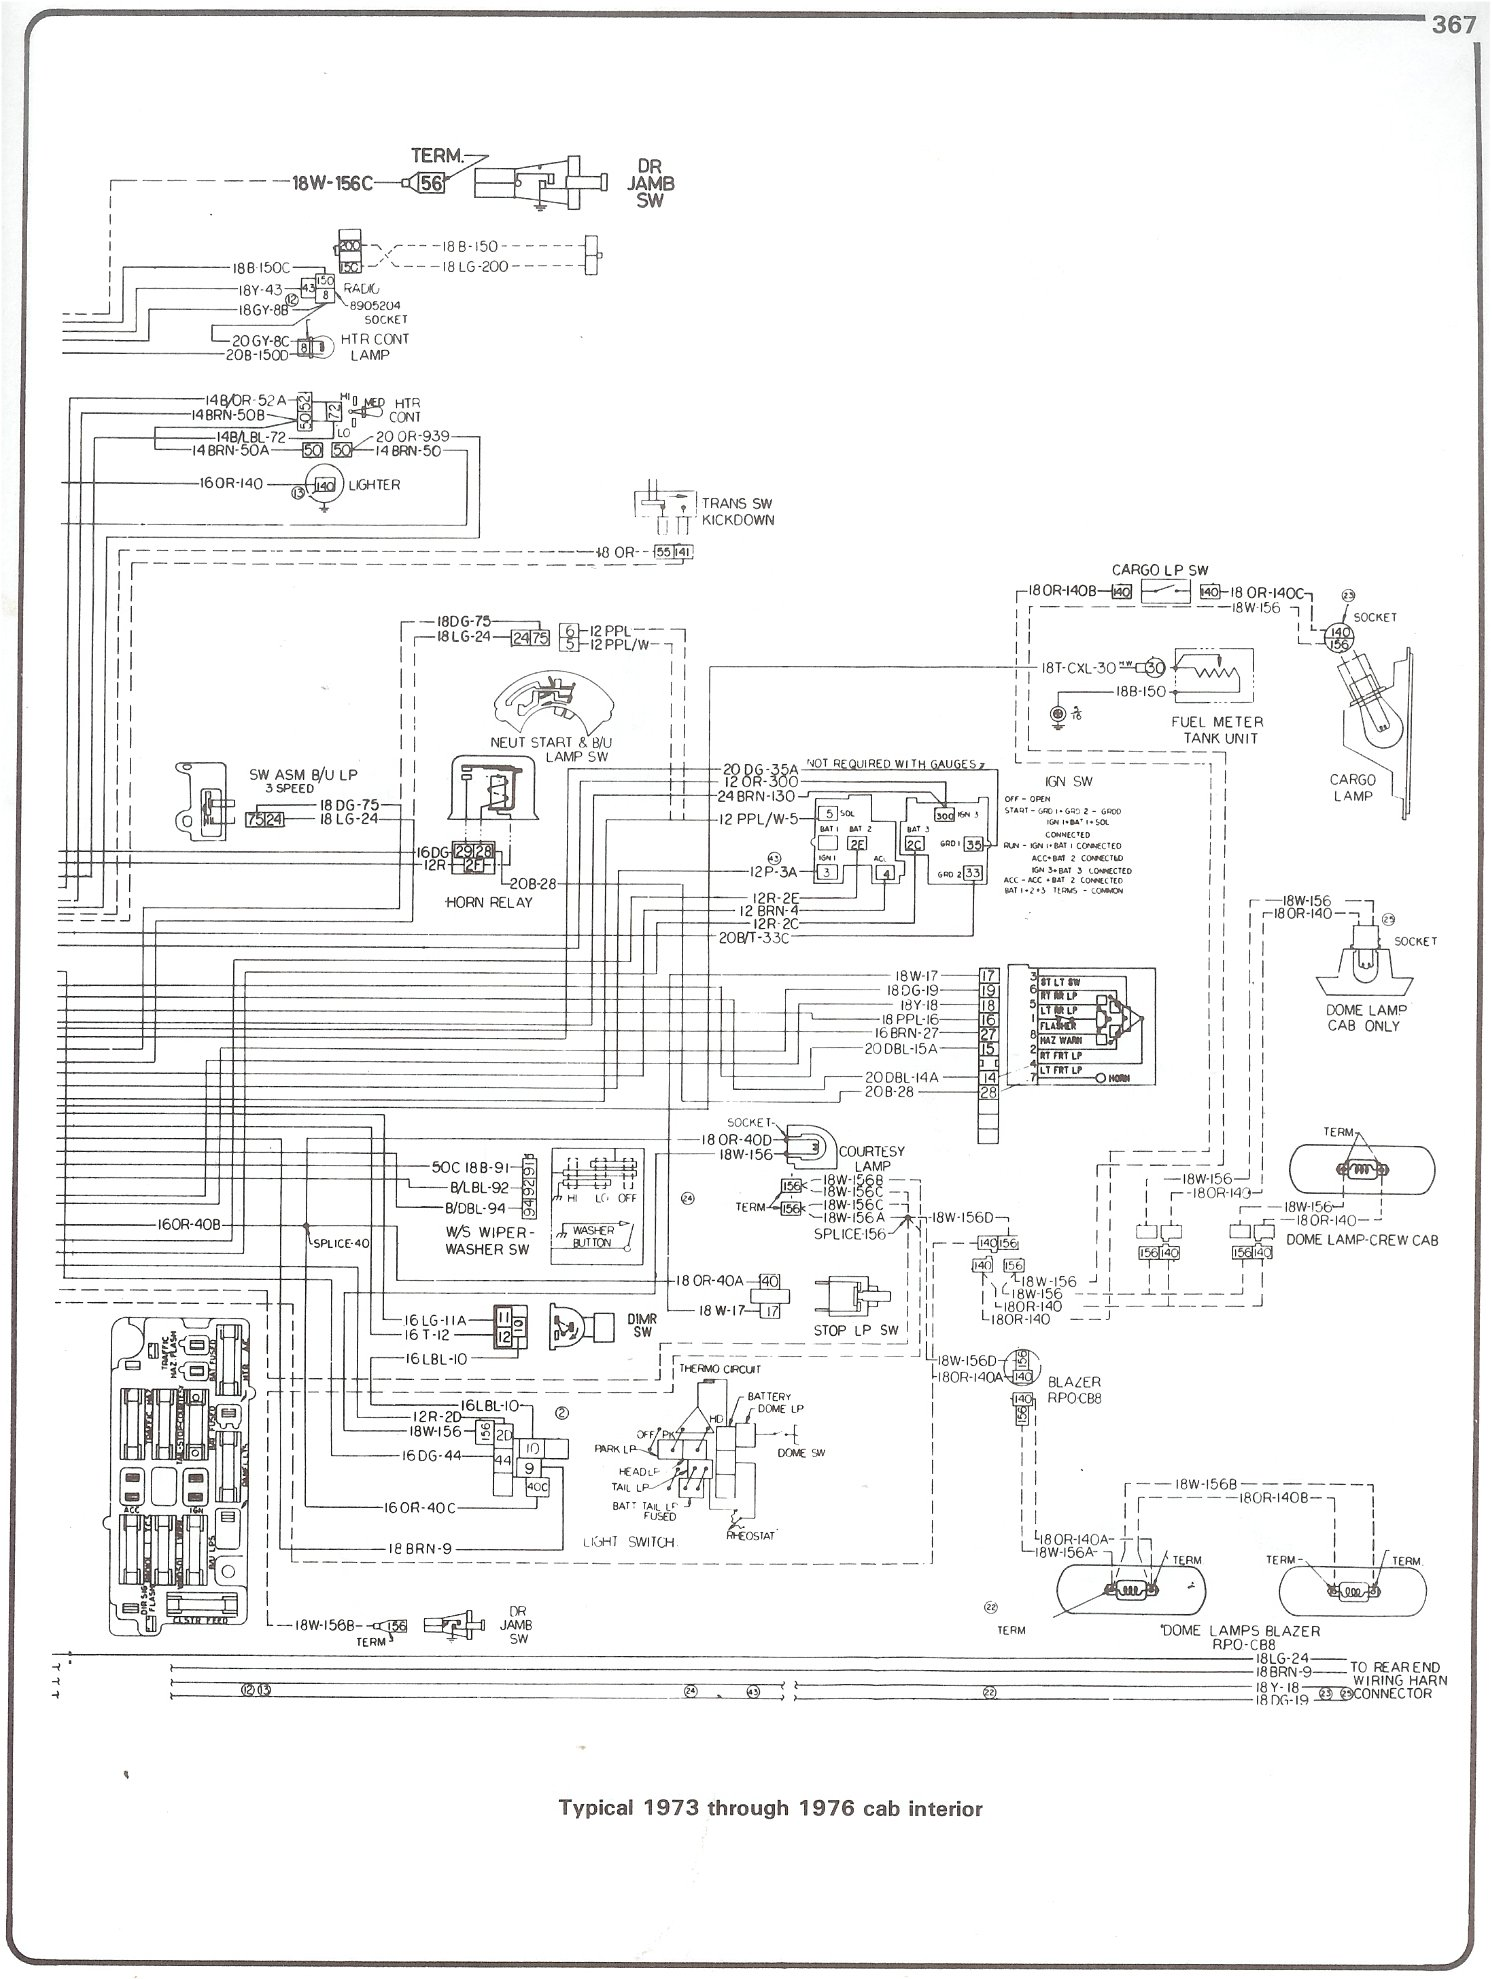 chevy truck instrument cluster wiring diagram Giimosn need a wiring diagram for a 1992 chevy 1500 pickup truck 1990 k1500 wiring diagram at eliteediting.co